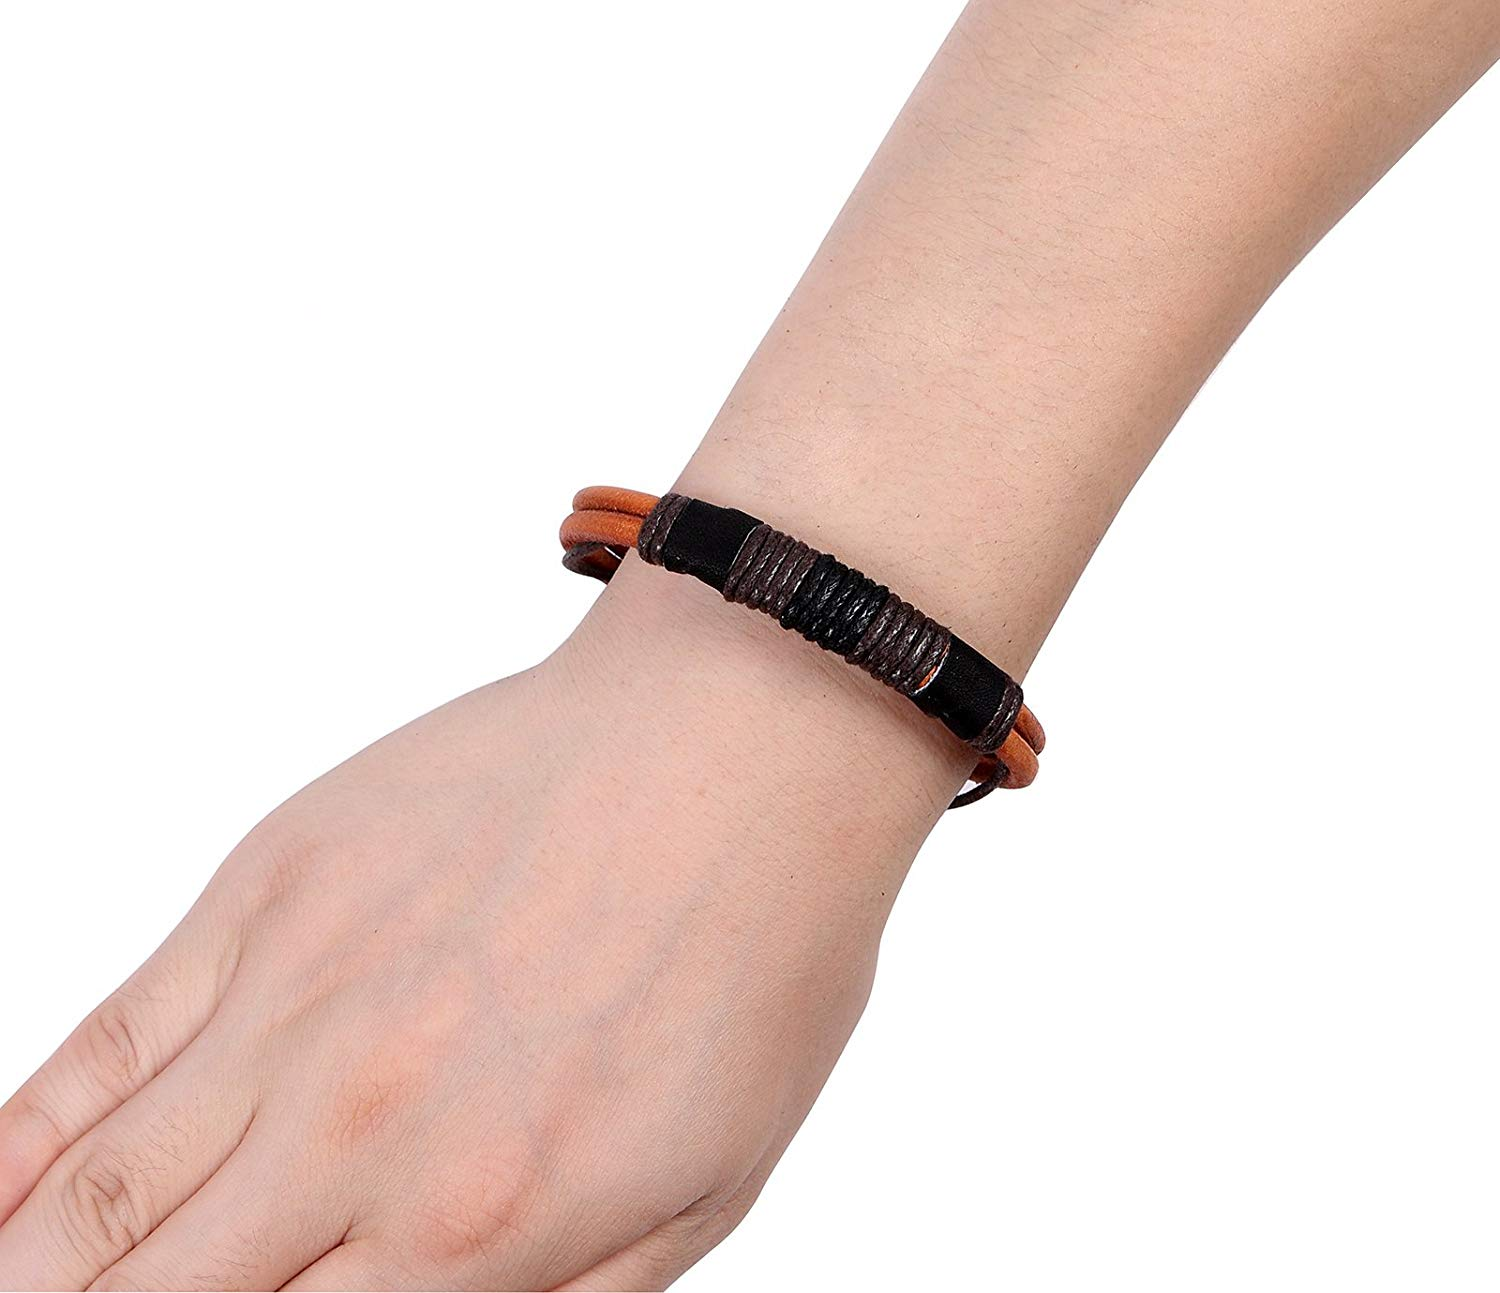 Areke Mens Handmade Rope Braided Leather Bracelets Bangle Wrap for Womens Boys Girls